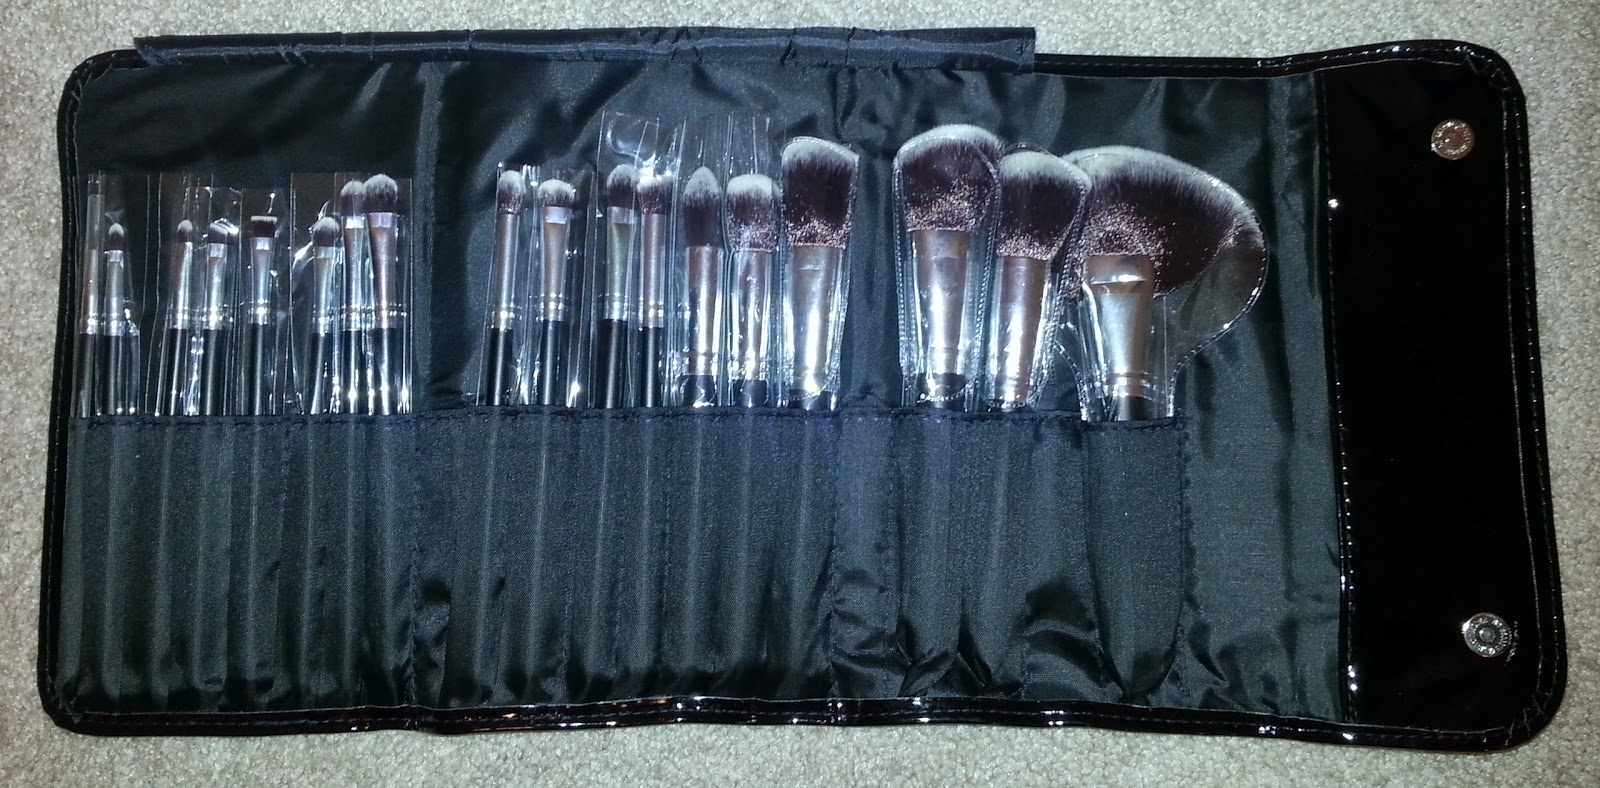 Morphe 18 Piece Vegan Brush Set